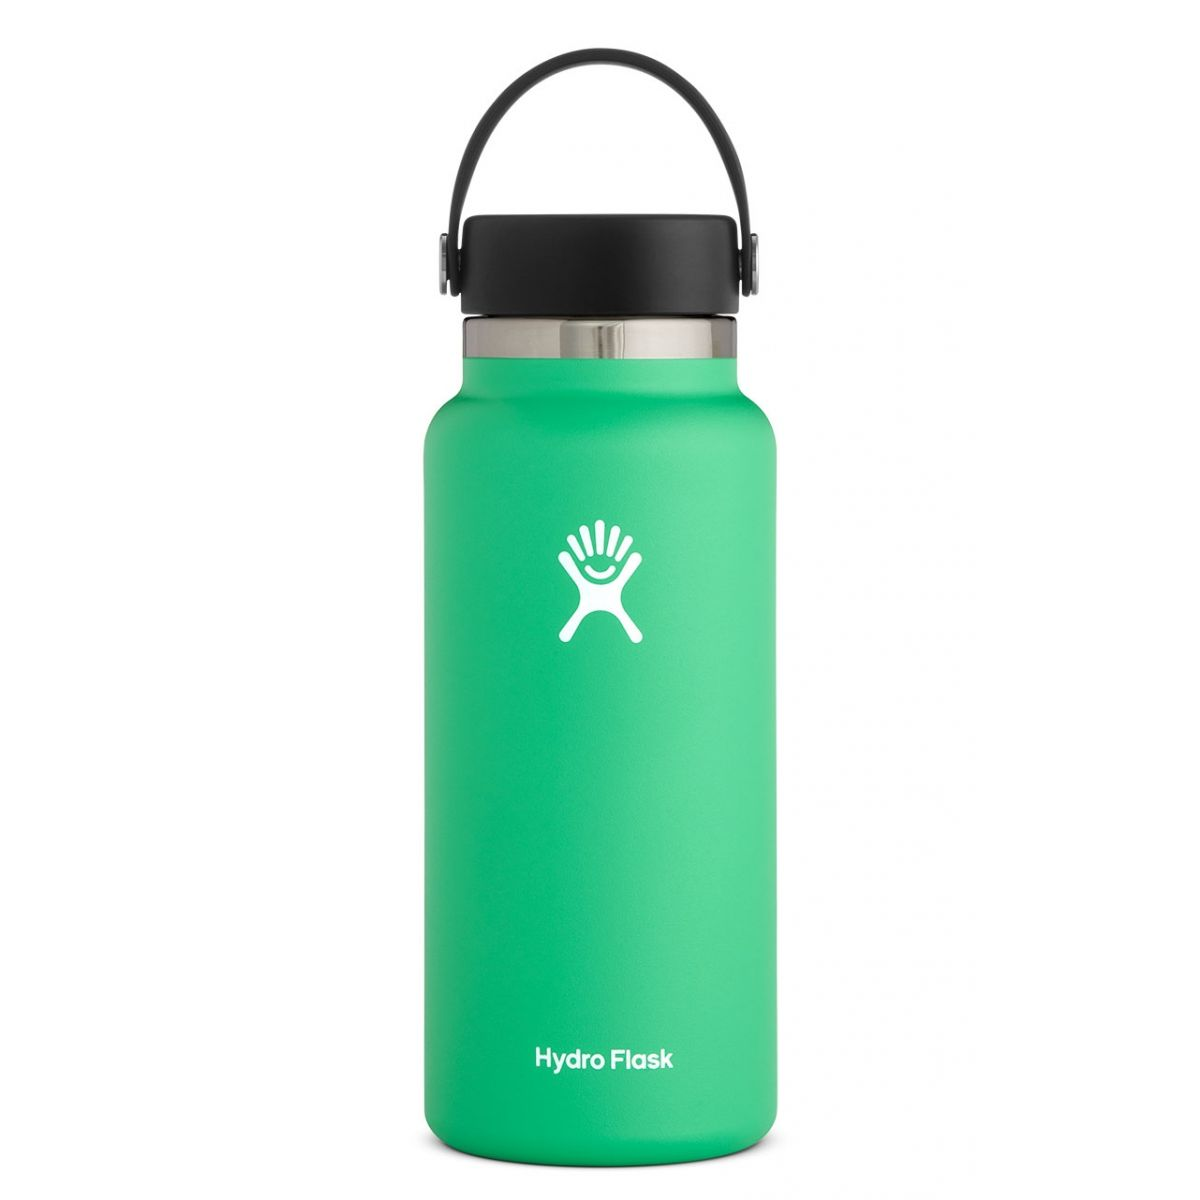 light green water bottle with black lid